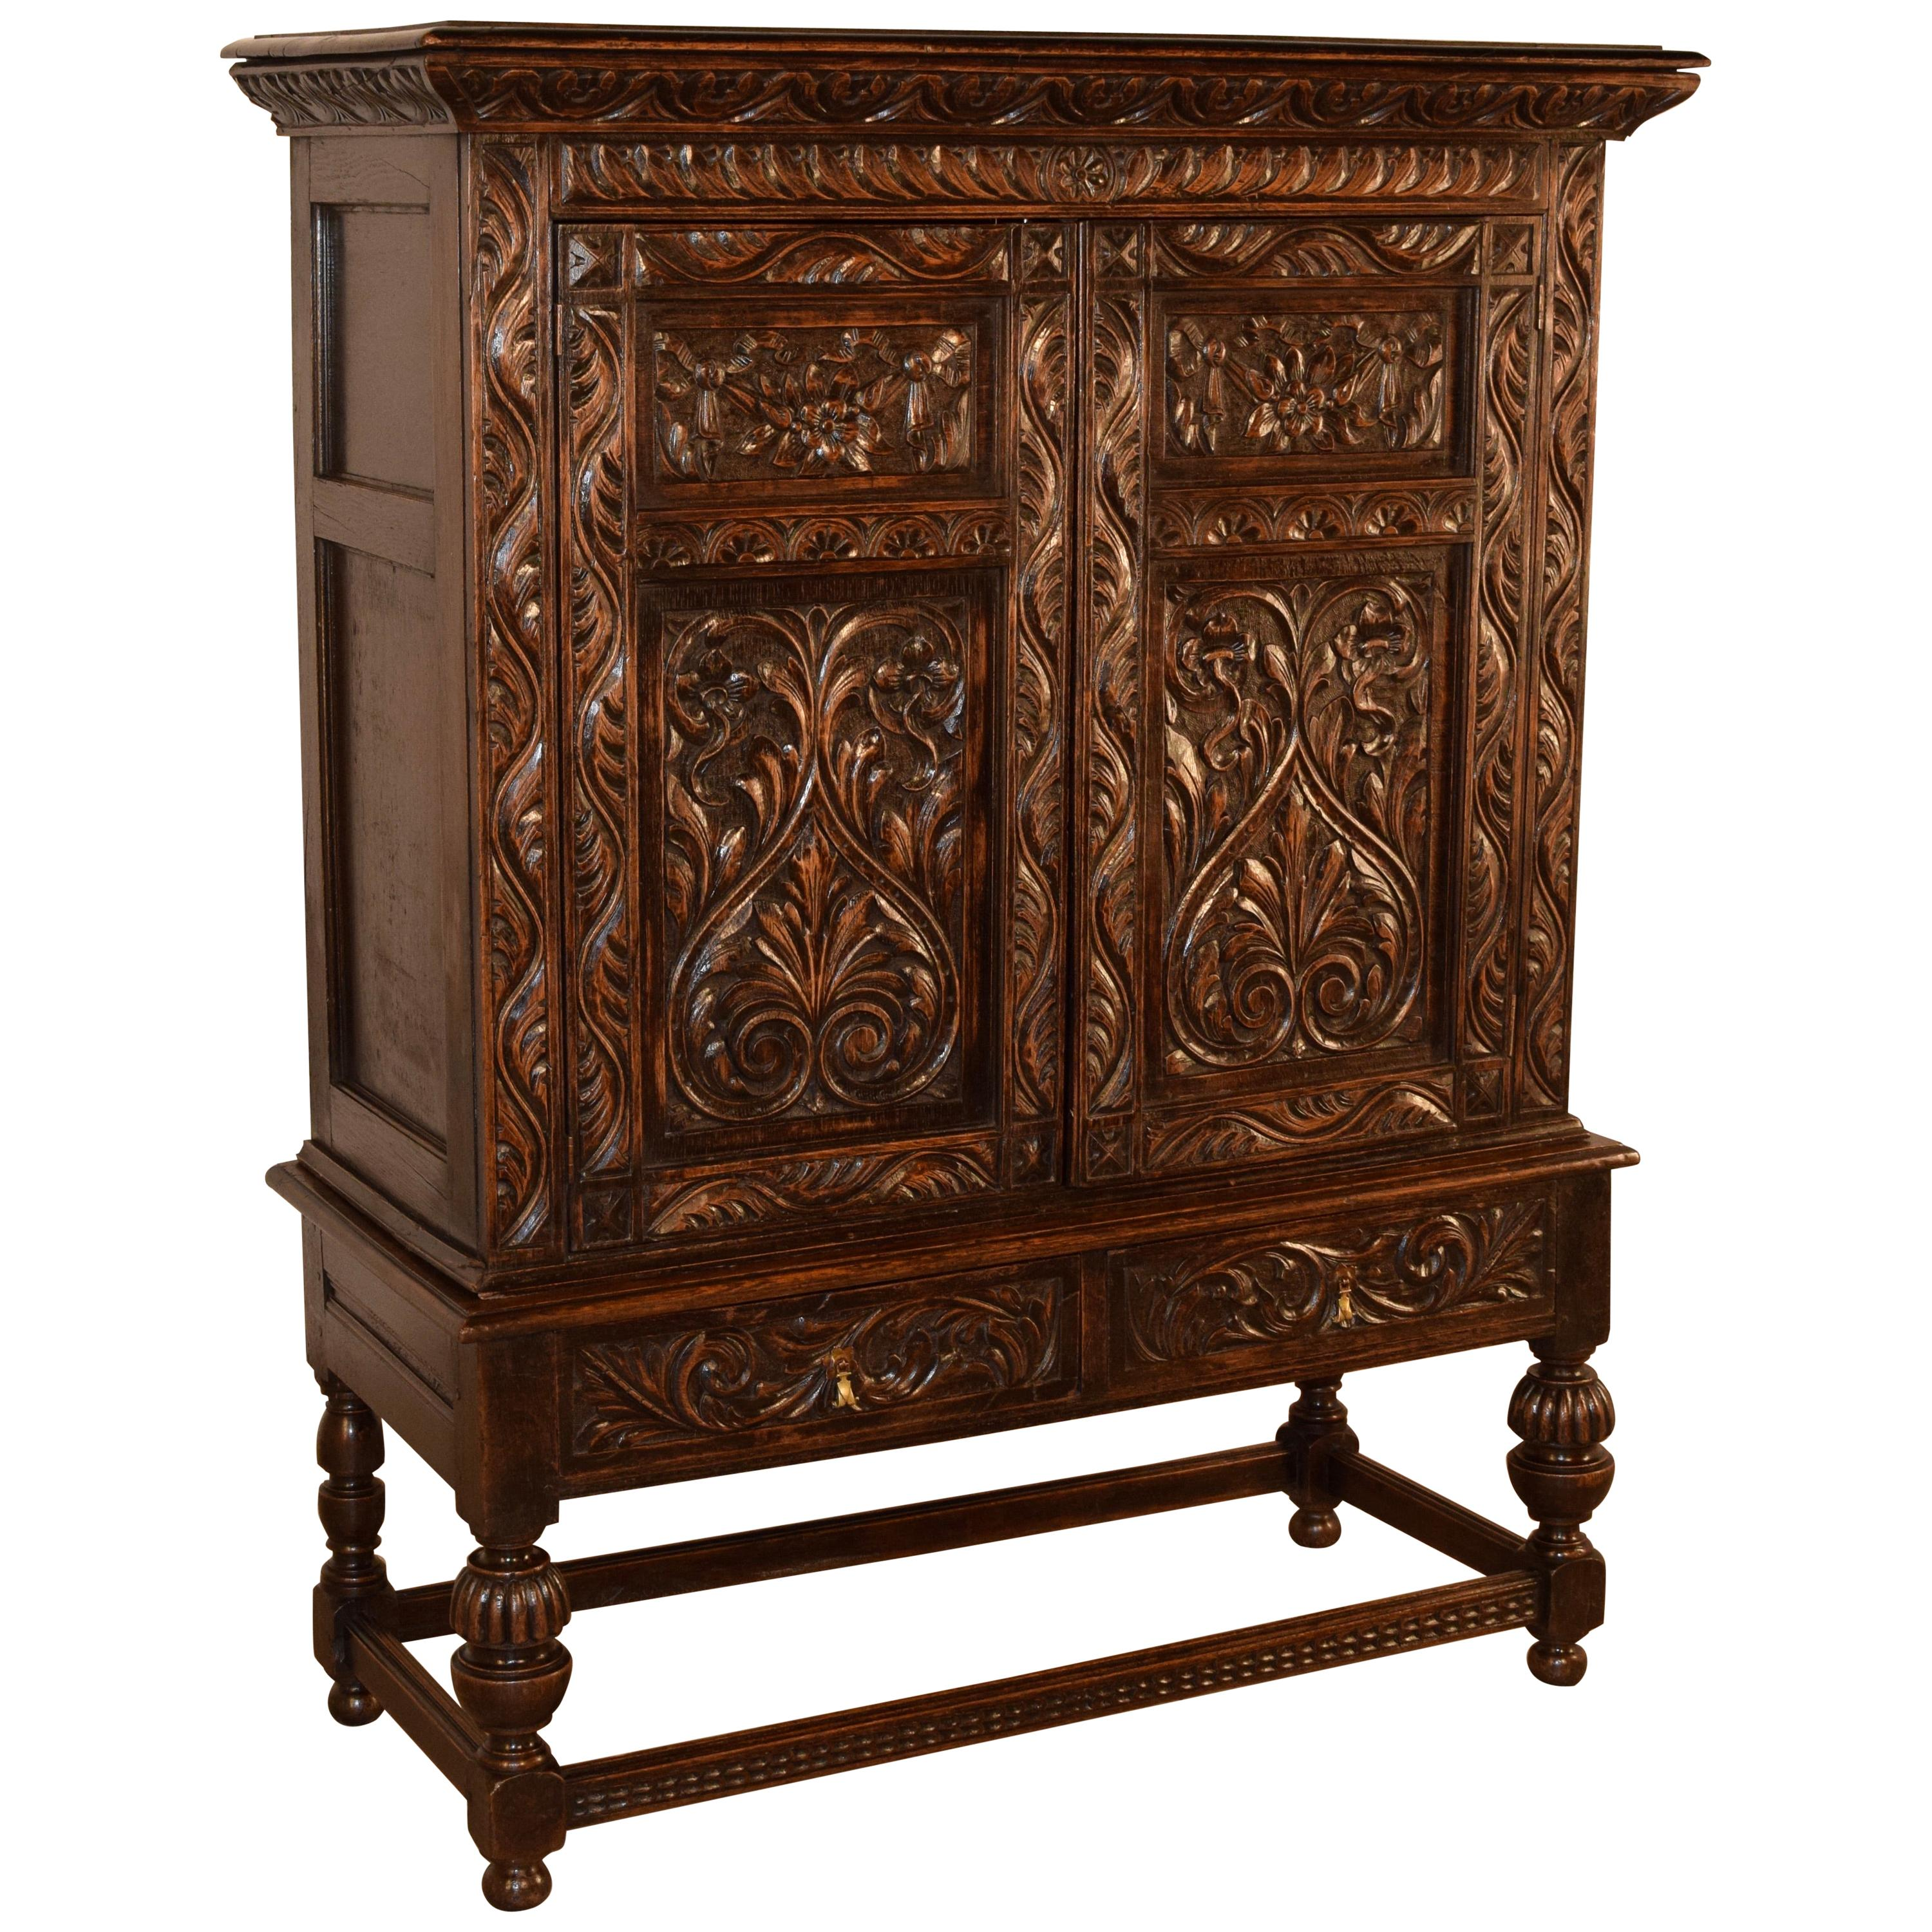 19th Century English Cupboard on Stand